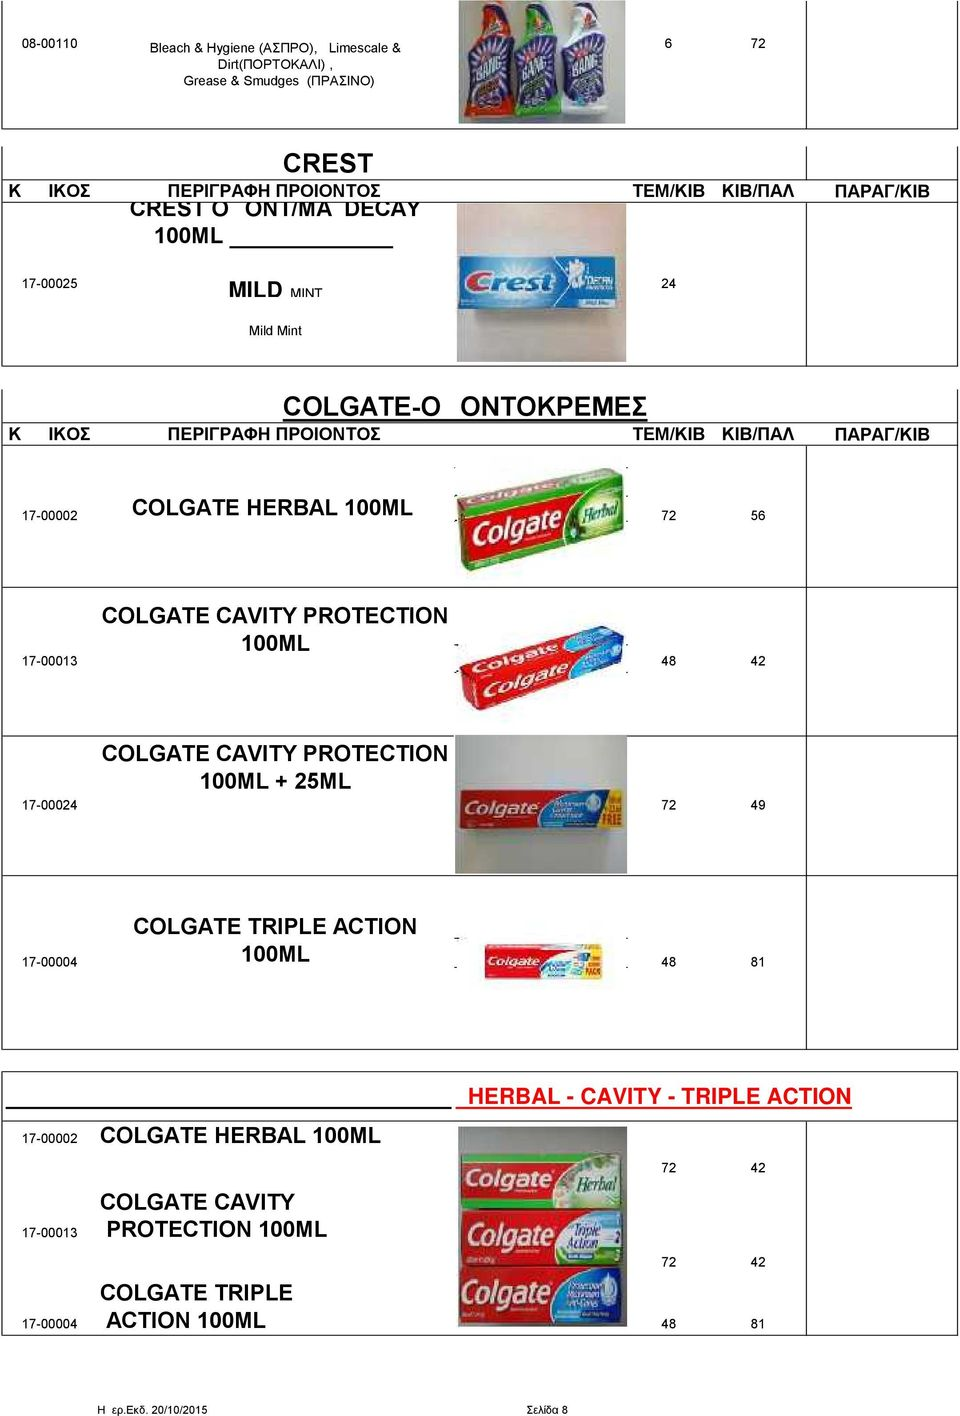 COLGATE CAVITY PROTECTION 100ML + 25ML 72 49 17-00004 COLGATE TRIPLΕ ACTION 100ML 48 81 ΤΙΜΗ ΜΙΧ ΠΑΛΕΤΑΣ ΓΙΑ ΤΟΥΣ ΚΩΔΙΚΟΥΣ HERBAL - CAVITY -